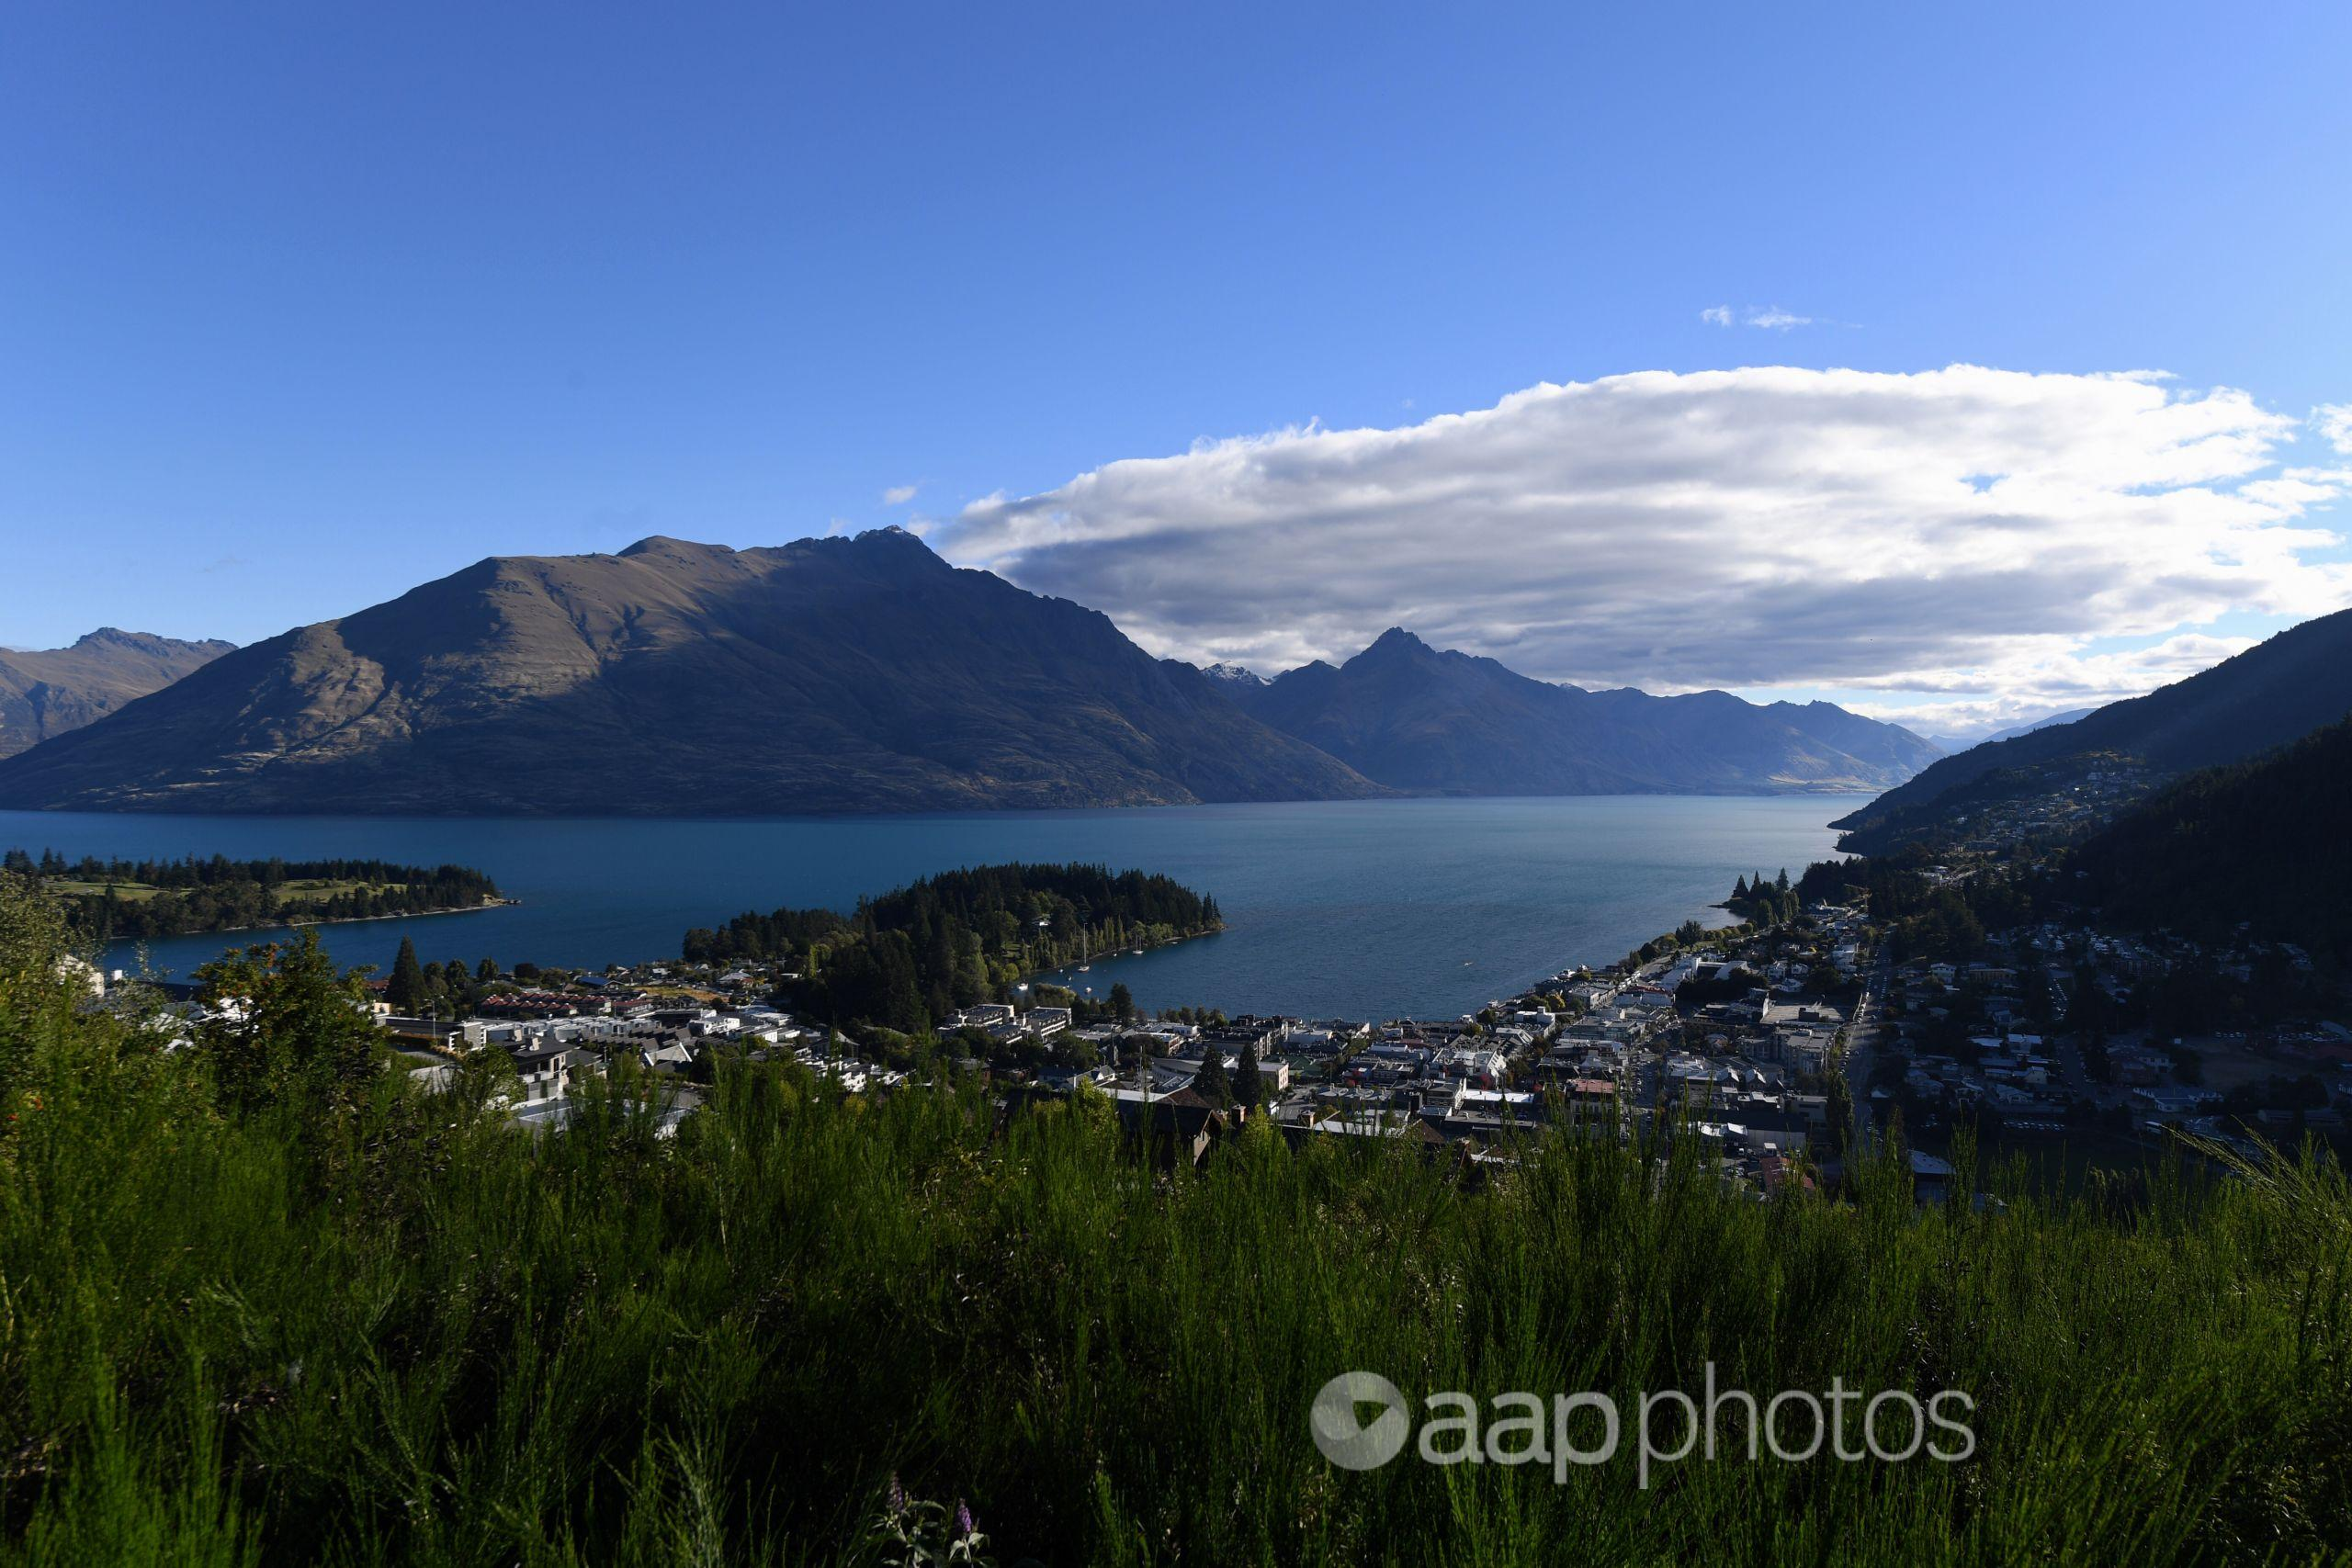 Overview of Lake Wakatipu and the city centre of Queenstown, NZ.